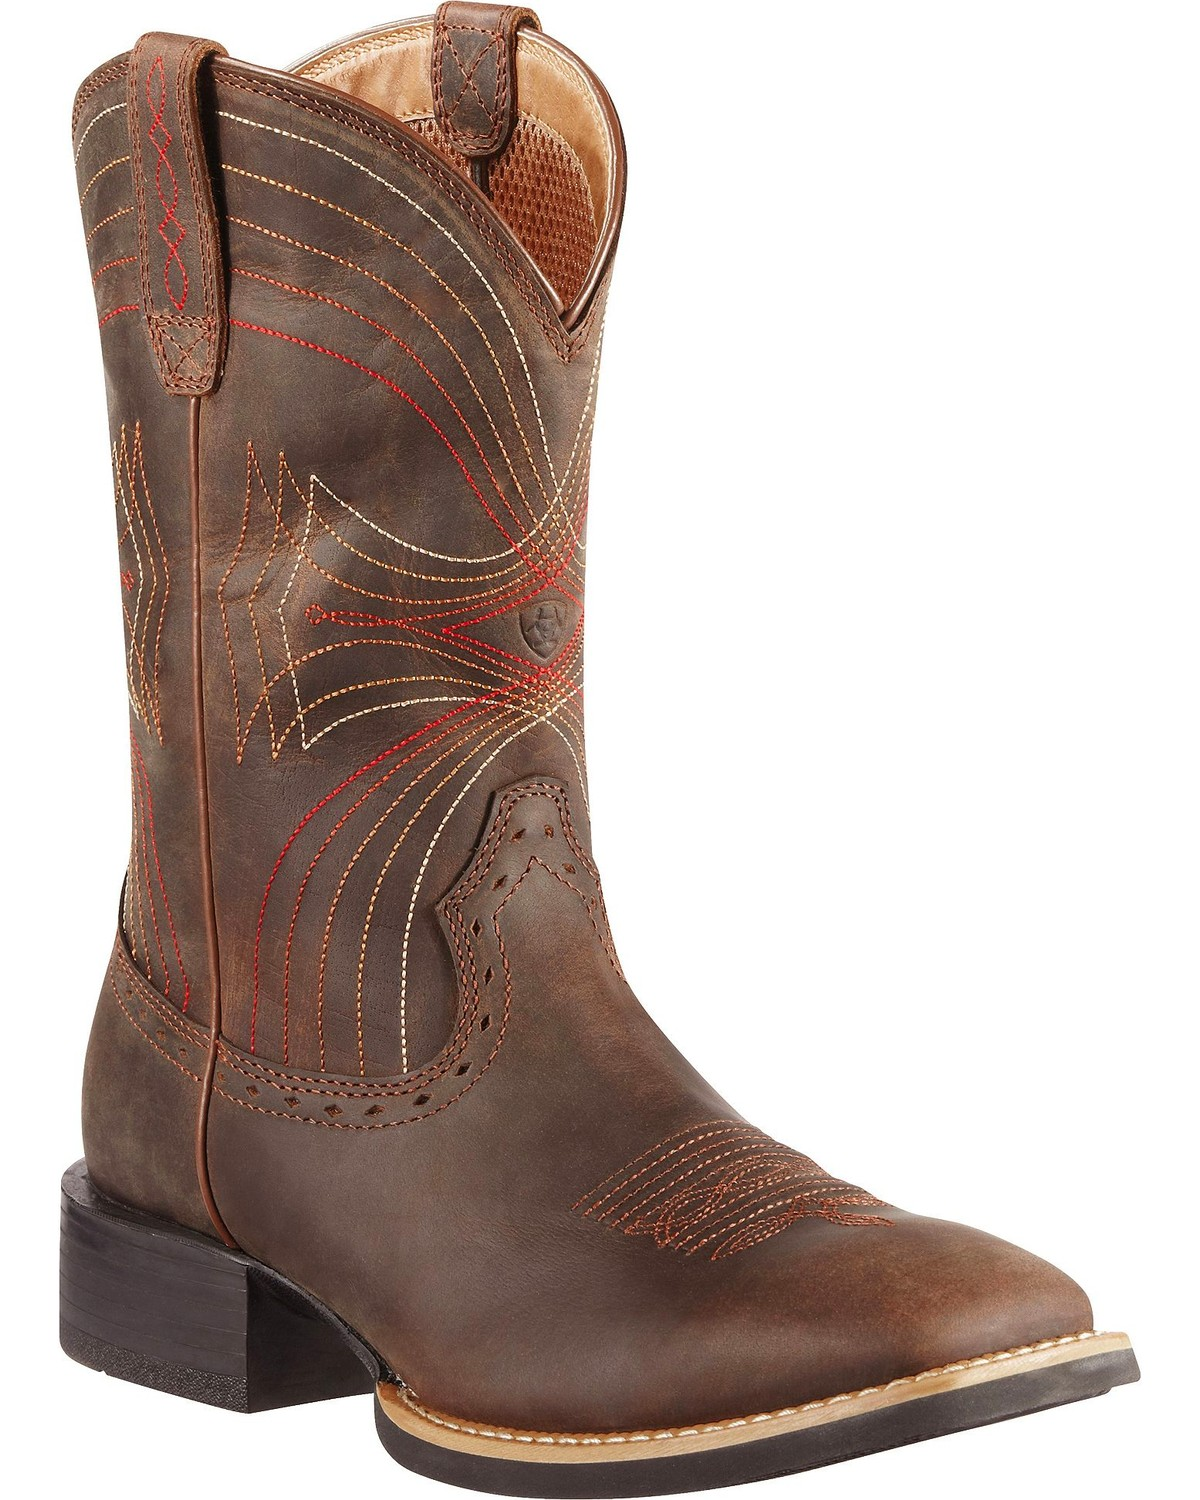 Ariat Sport Cowboy Boots Square Toe Country Outfitter